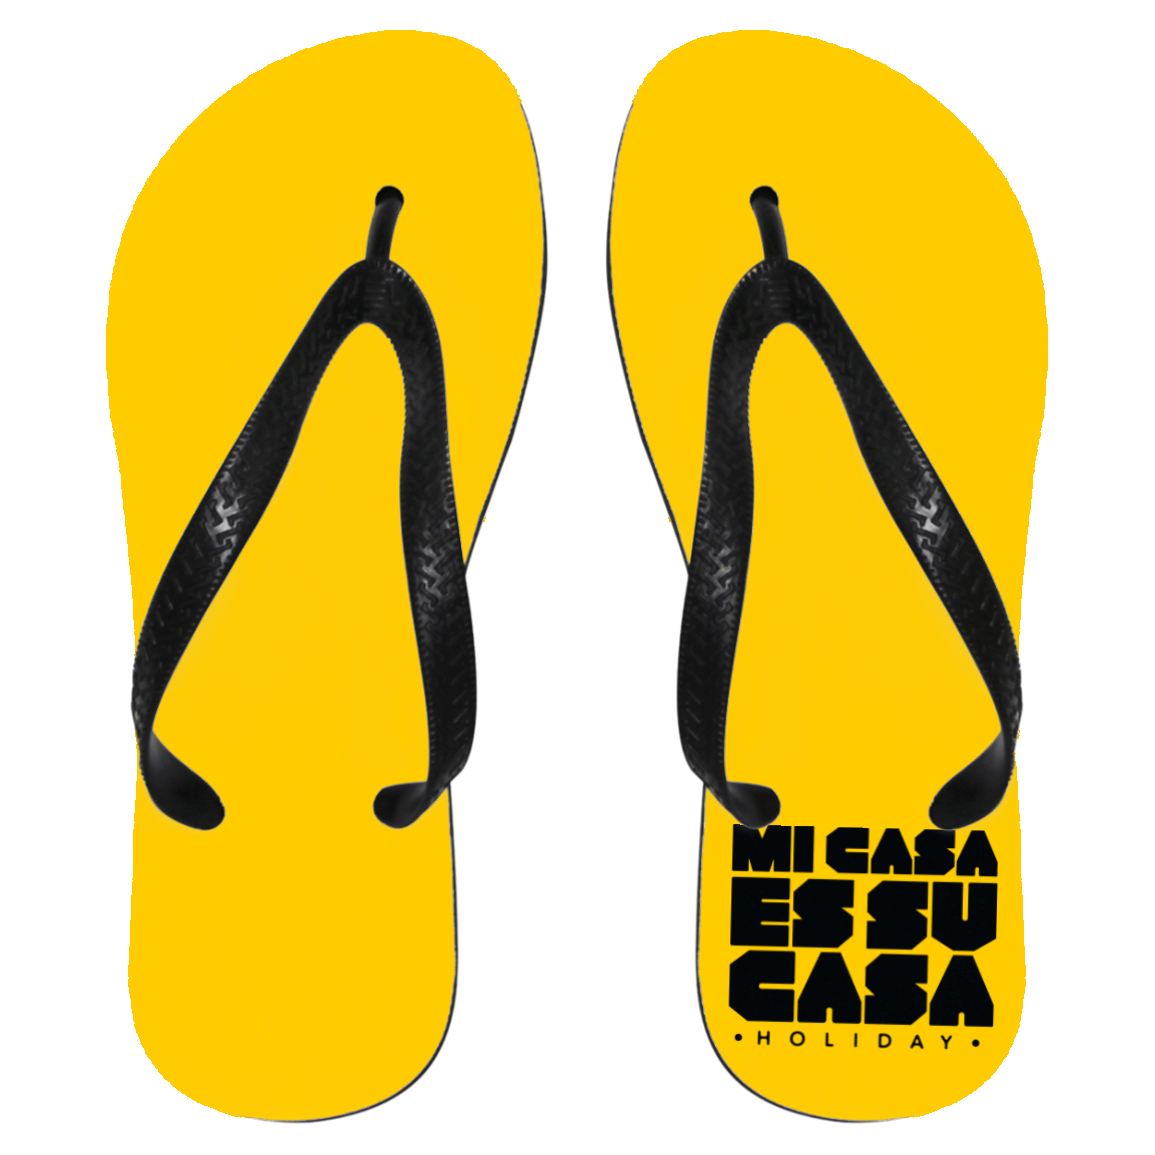 Mi Casa Holiday Flip Flops - Medium